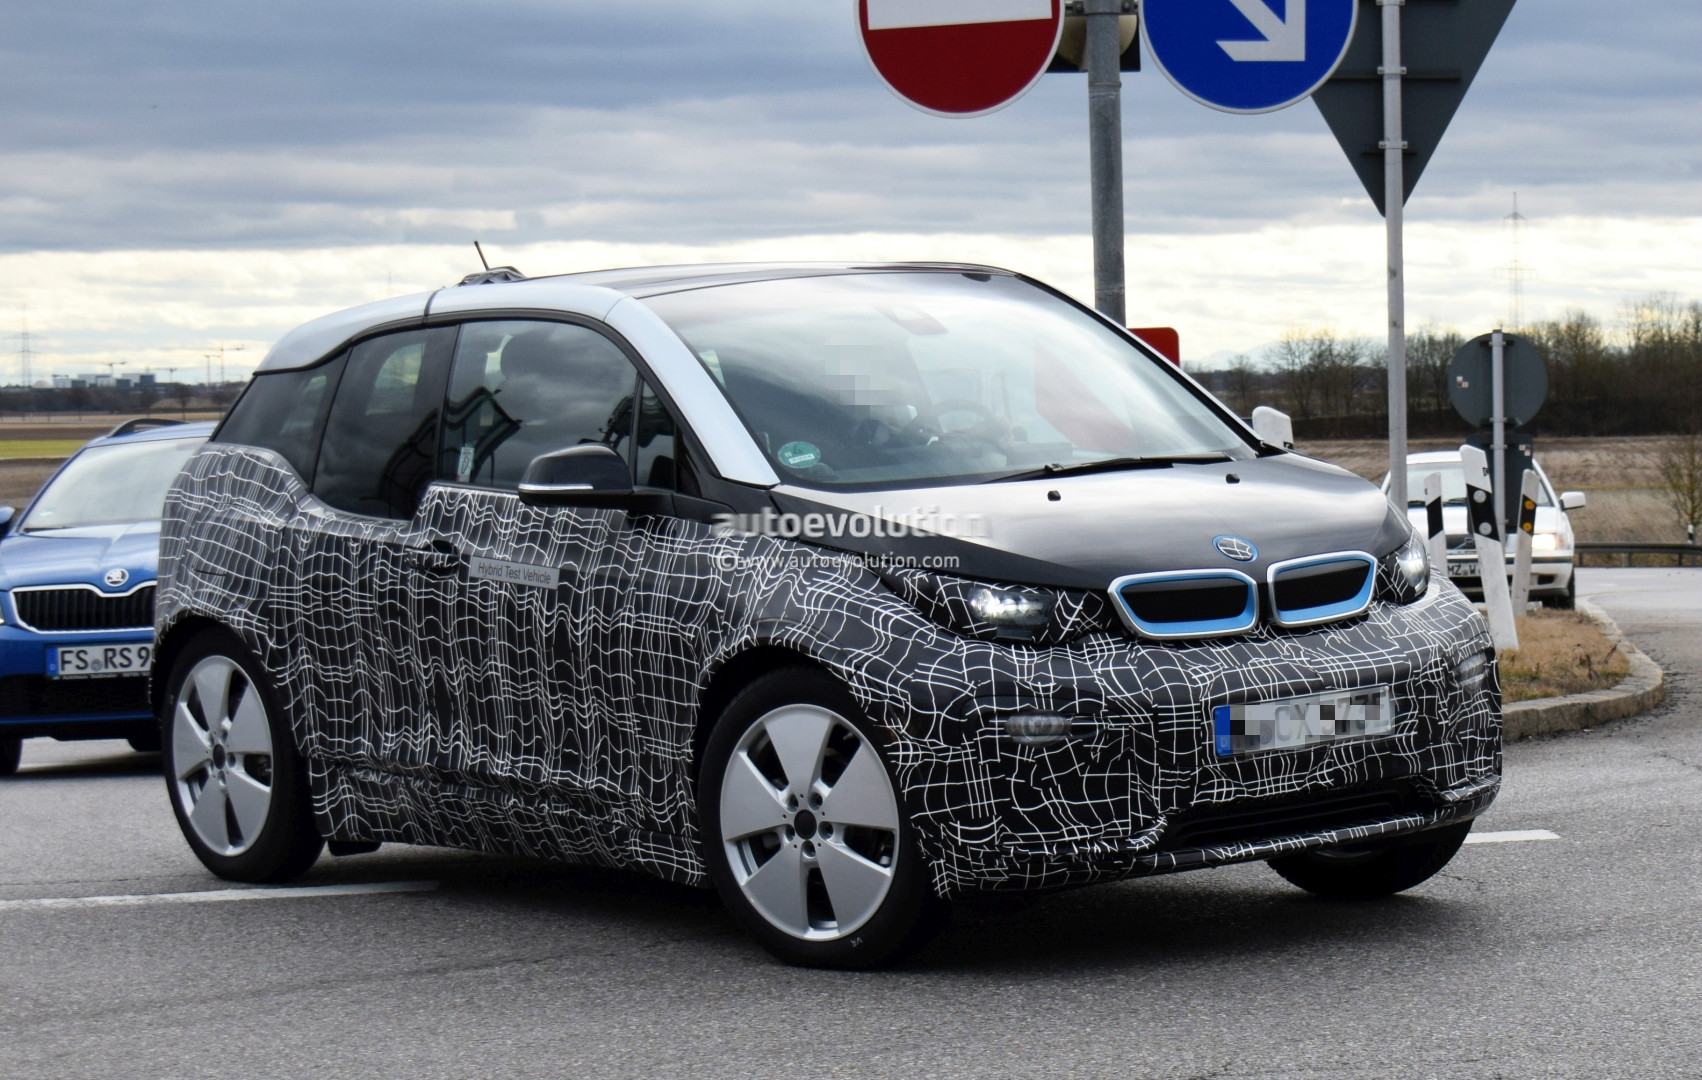 2018 bmw i3 facelift spotted in german traffic i3s electric hot hatch rides low autoevolution. Black Bedroom Furniture Sets. Home Design Ideas